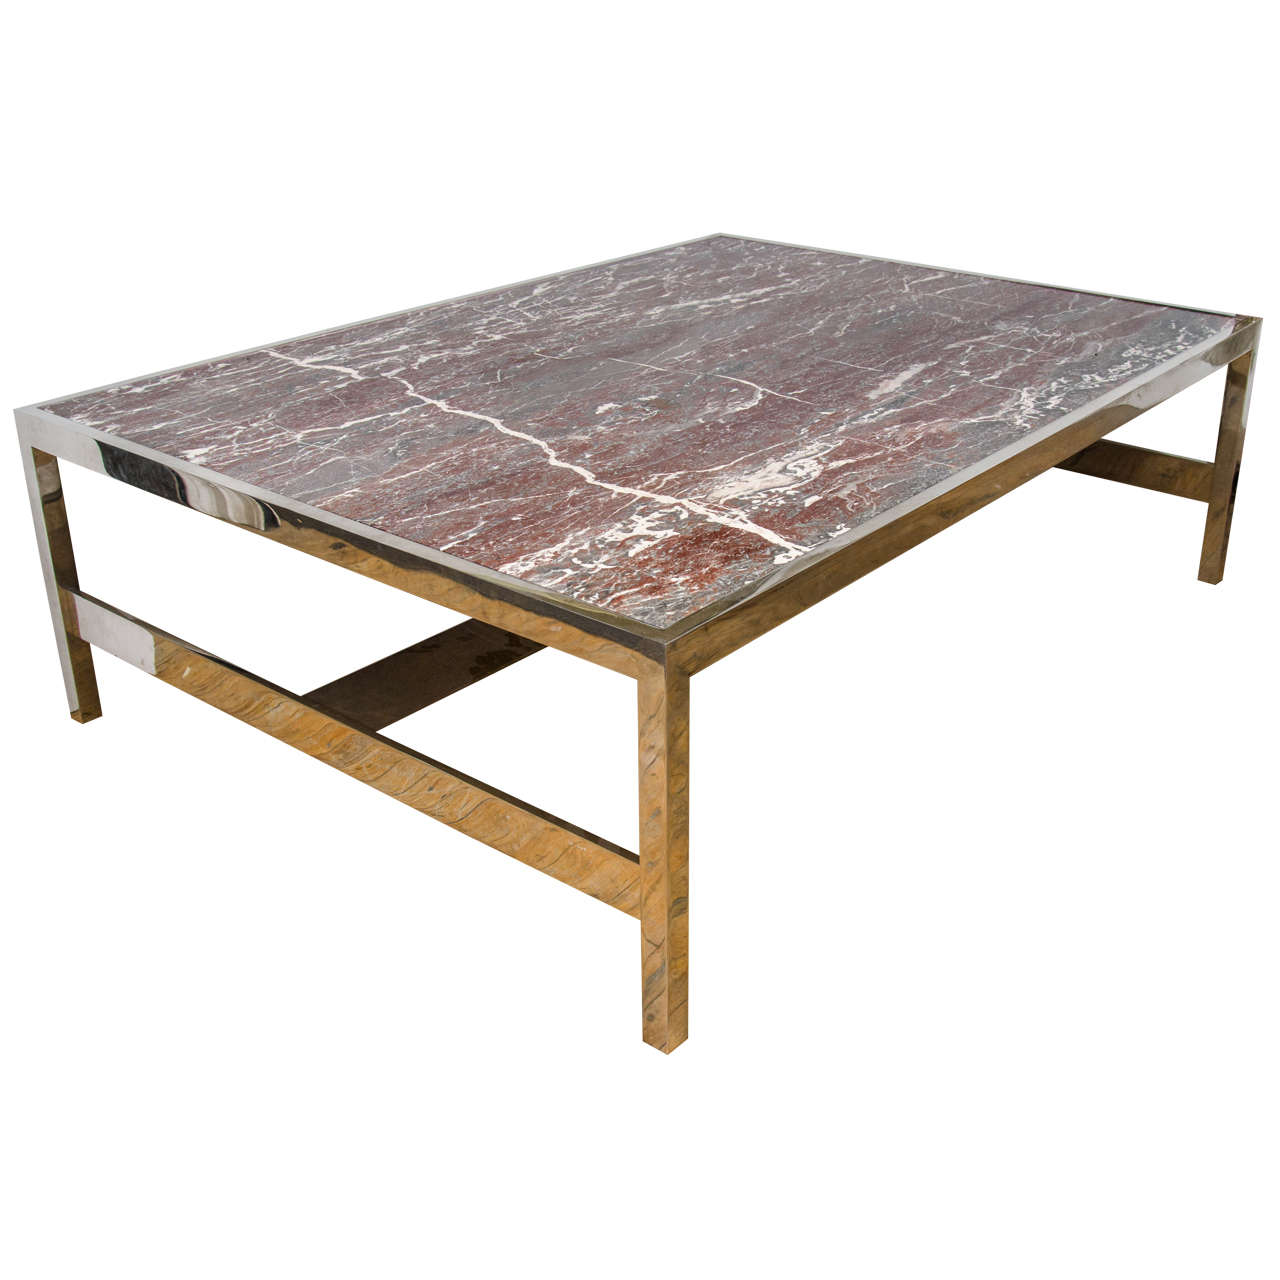 Marble Coffee Table For Sale Singapore: Solid Marble Coffee And Cocktail Table On Chrome Base At